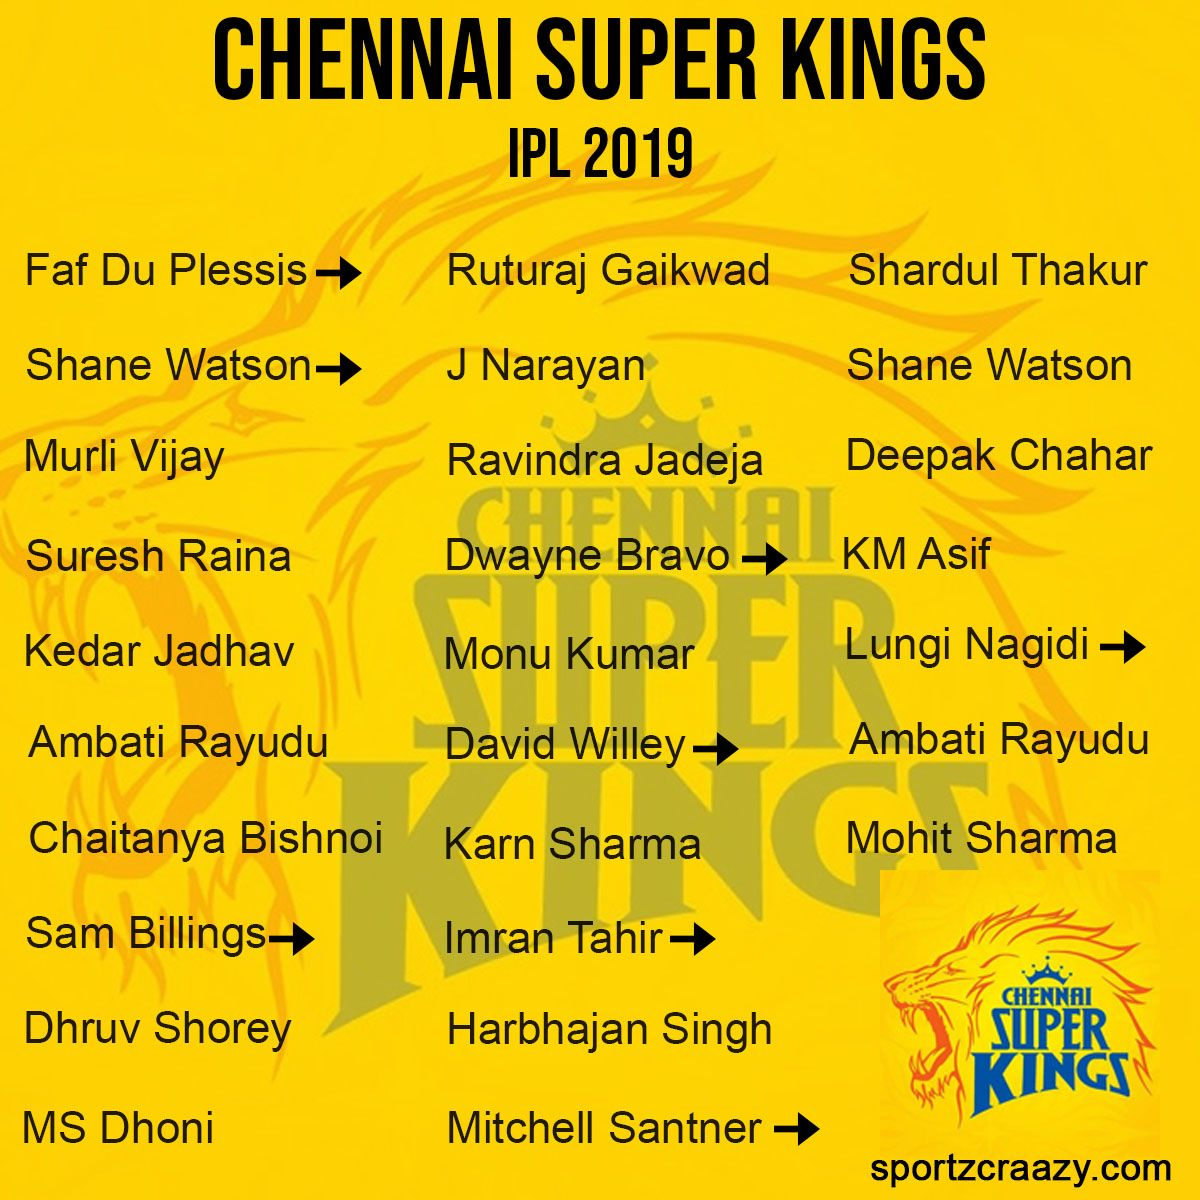 Chennai Super Kings IPL Squad 2019 Chennai super kings